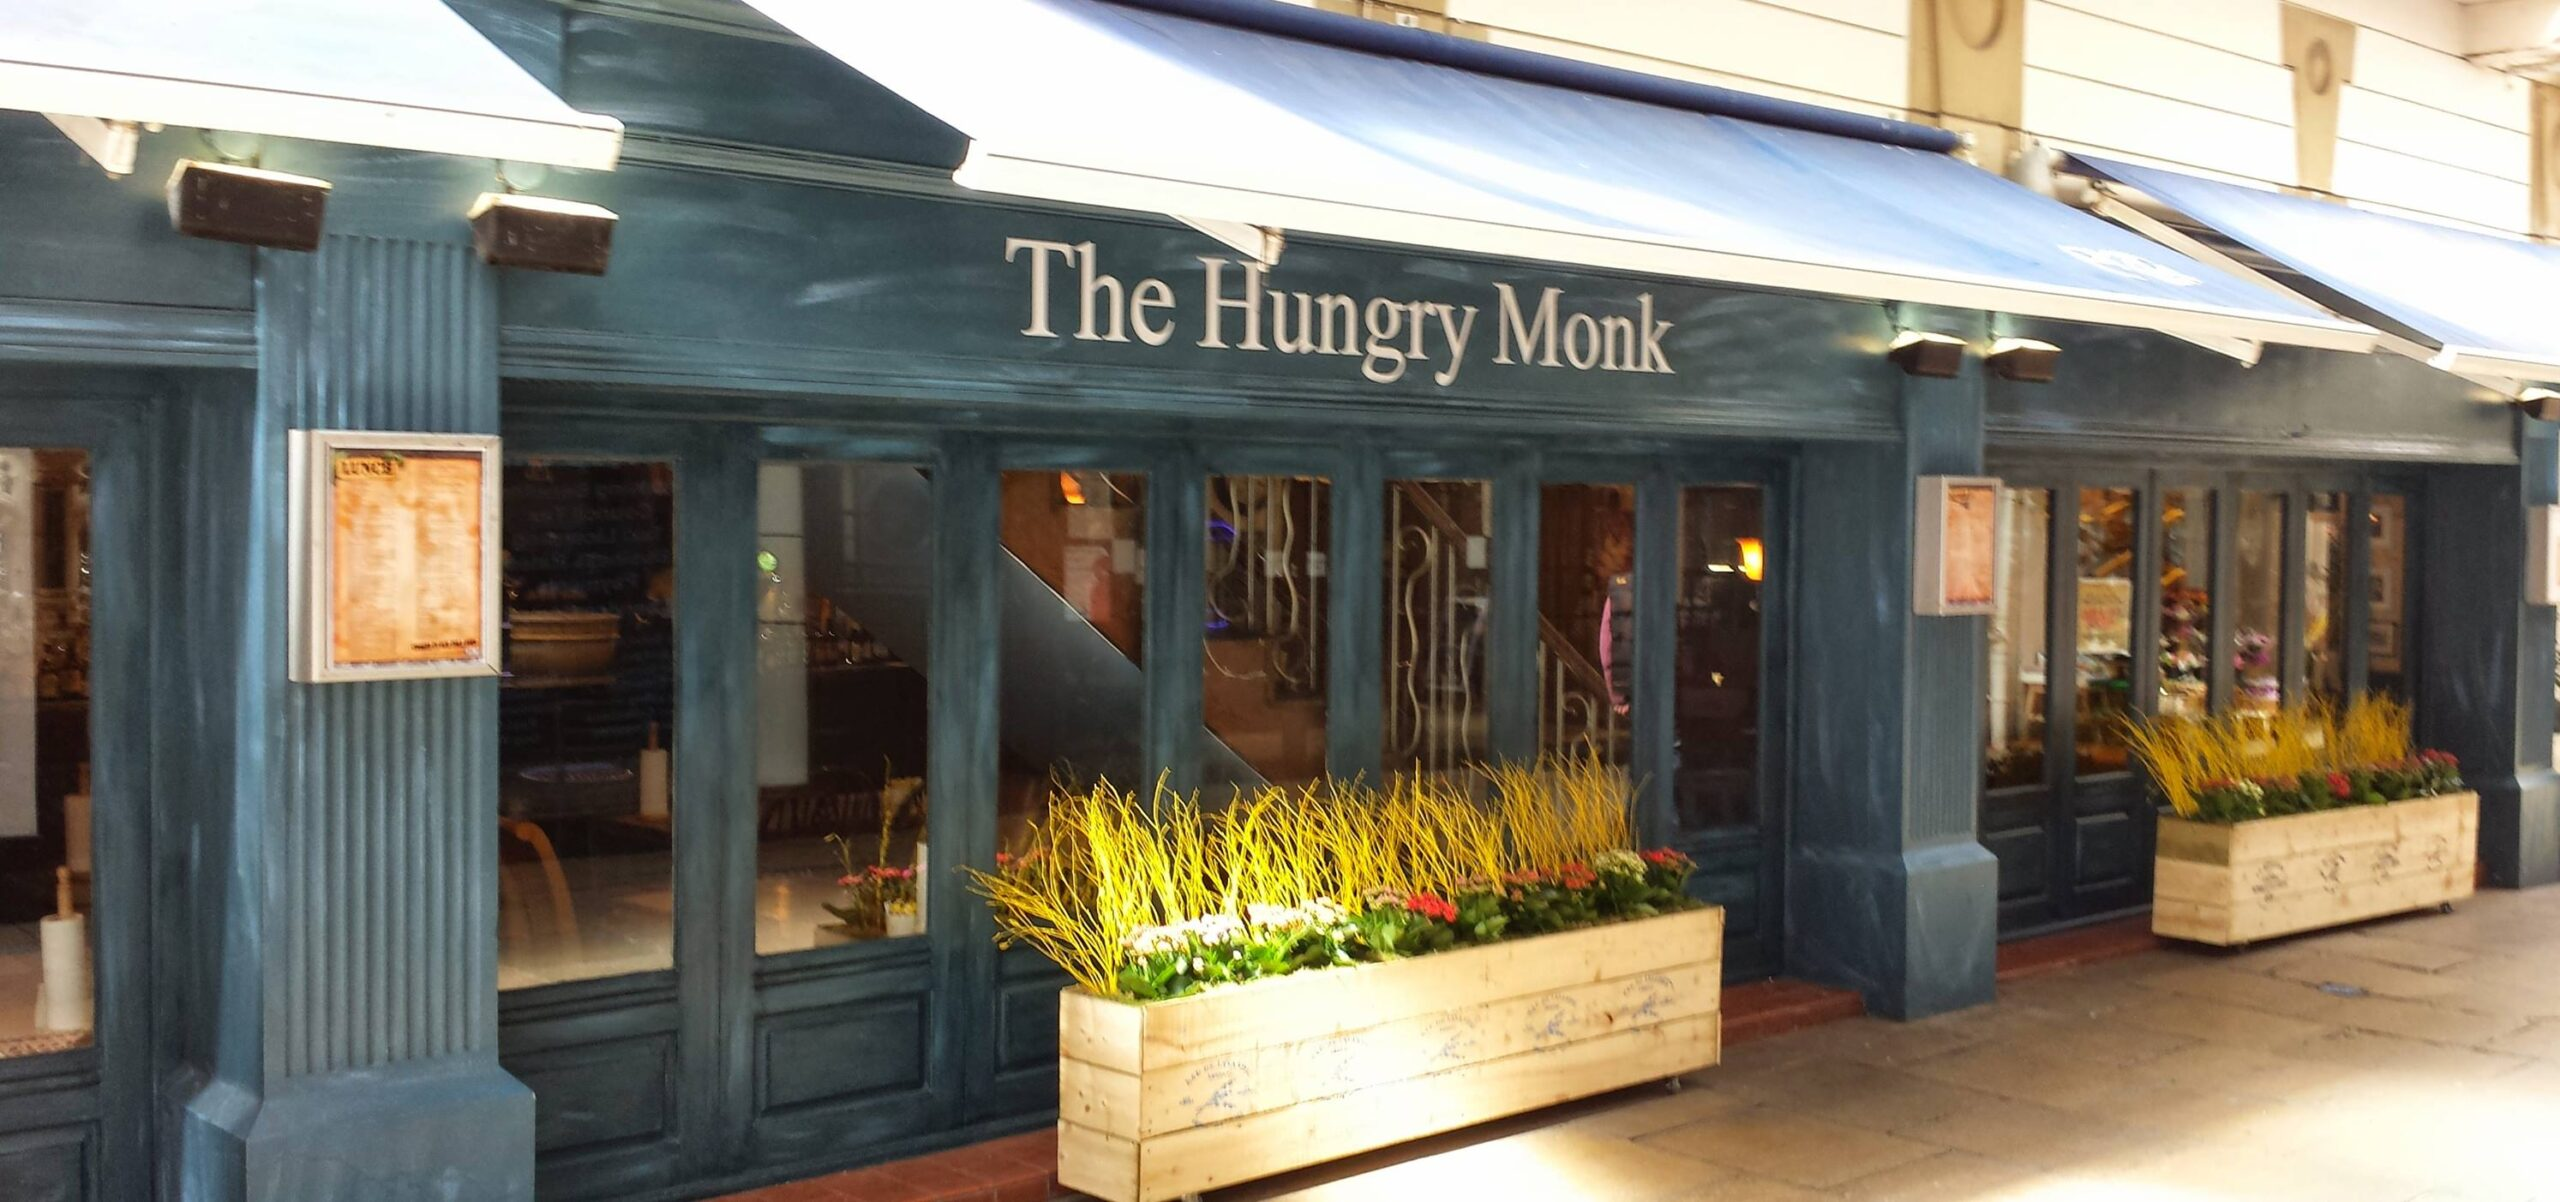 The Hungry Monk ale house and kitchen in Southport